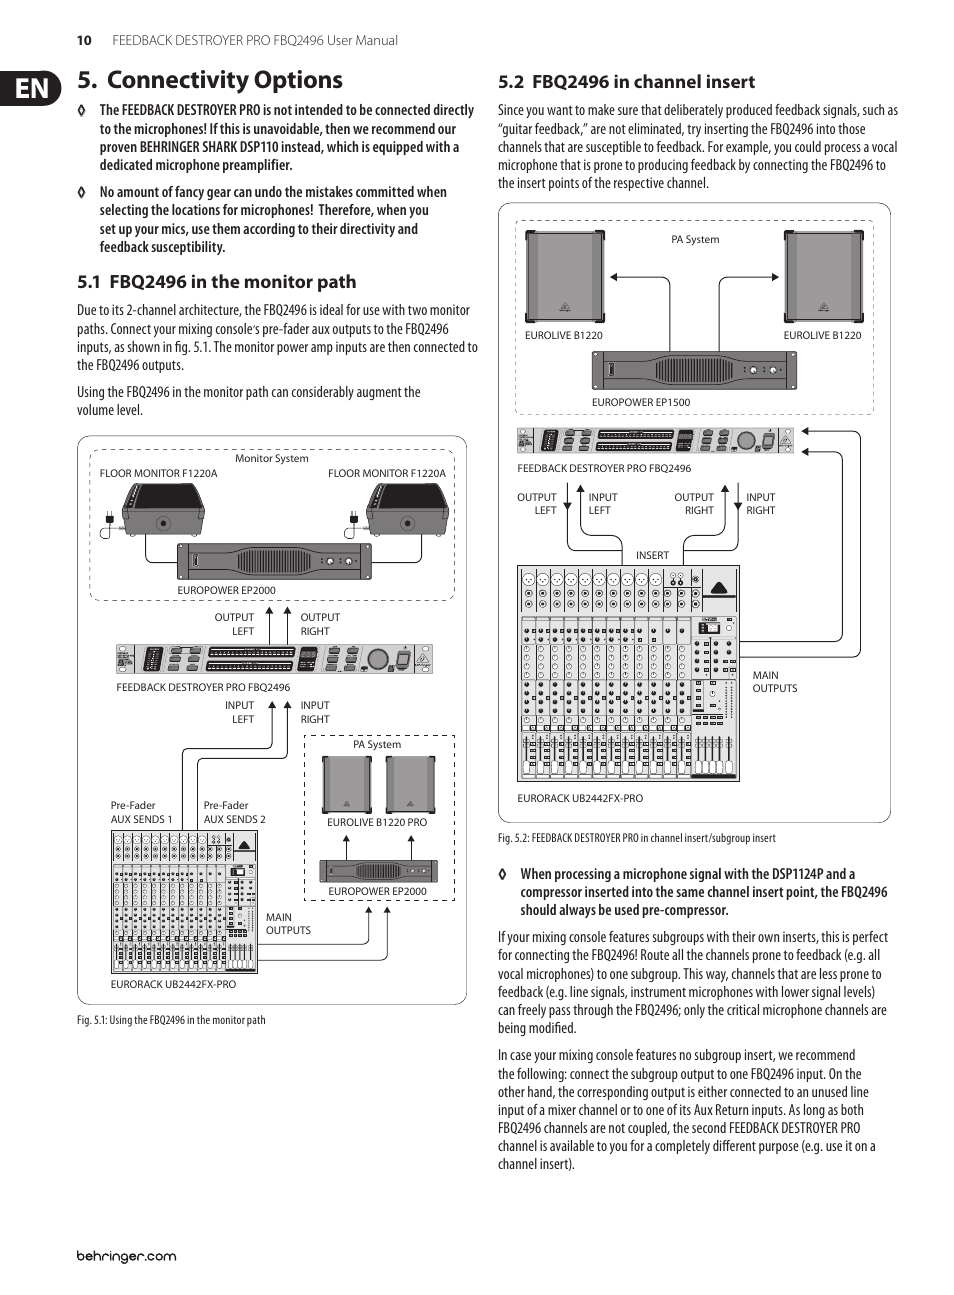 Connectivity options | Behringer Feedback Destroyer Pro FBQ2496 User Manual  | Page 10 / 16